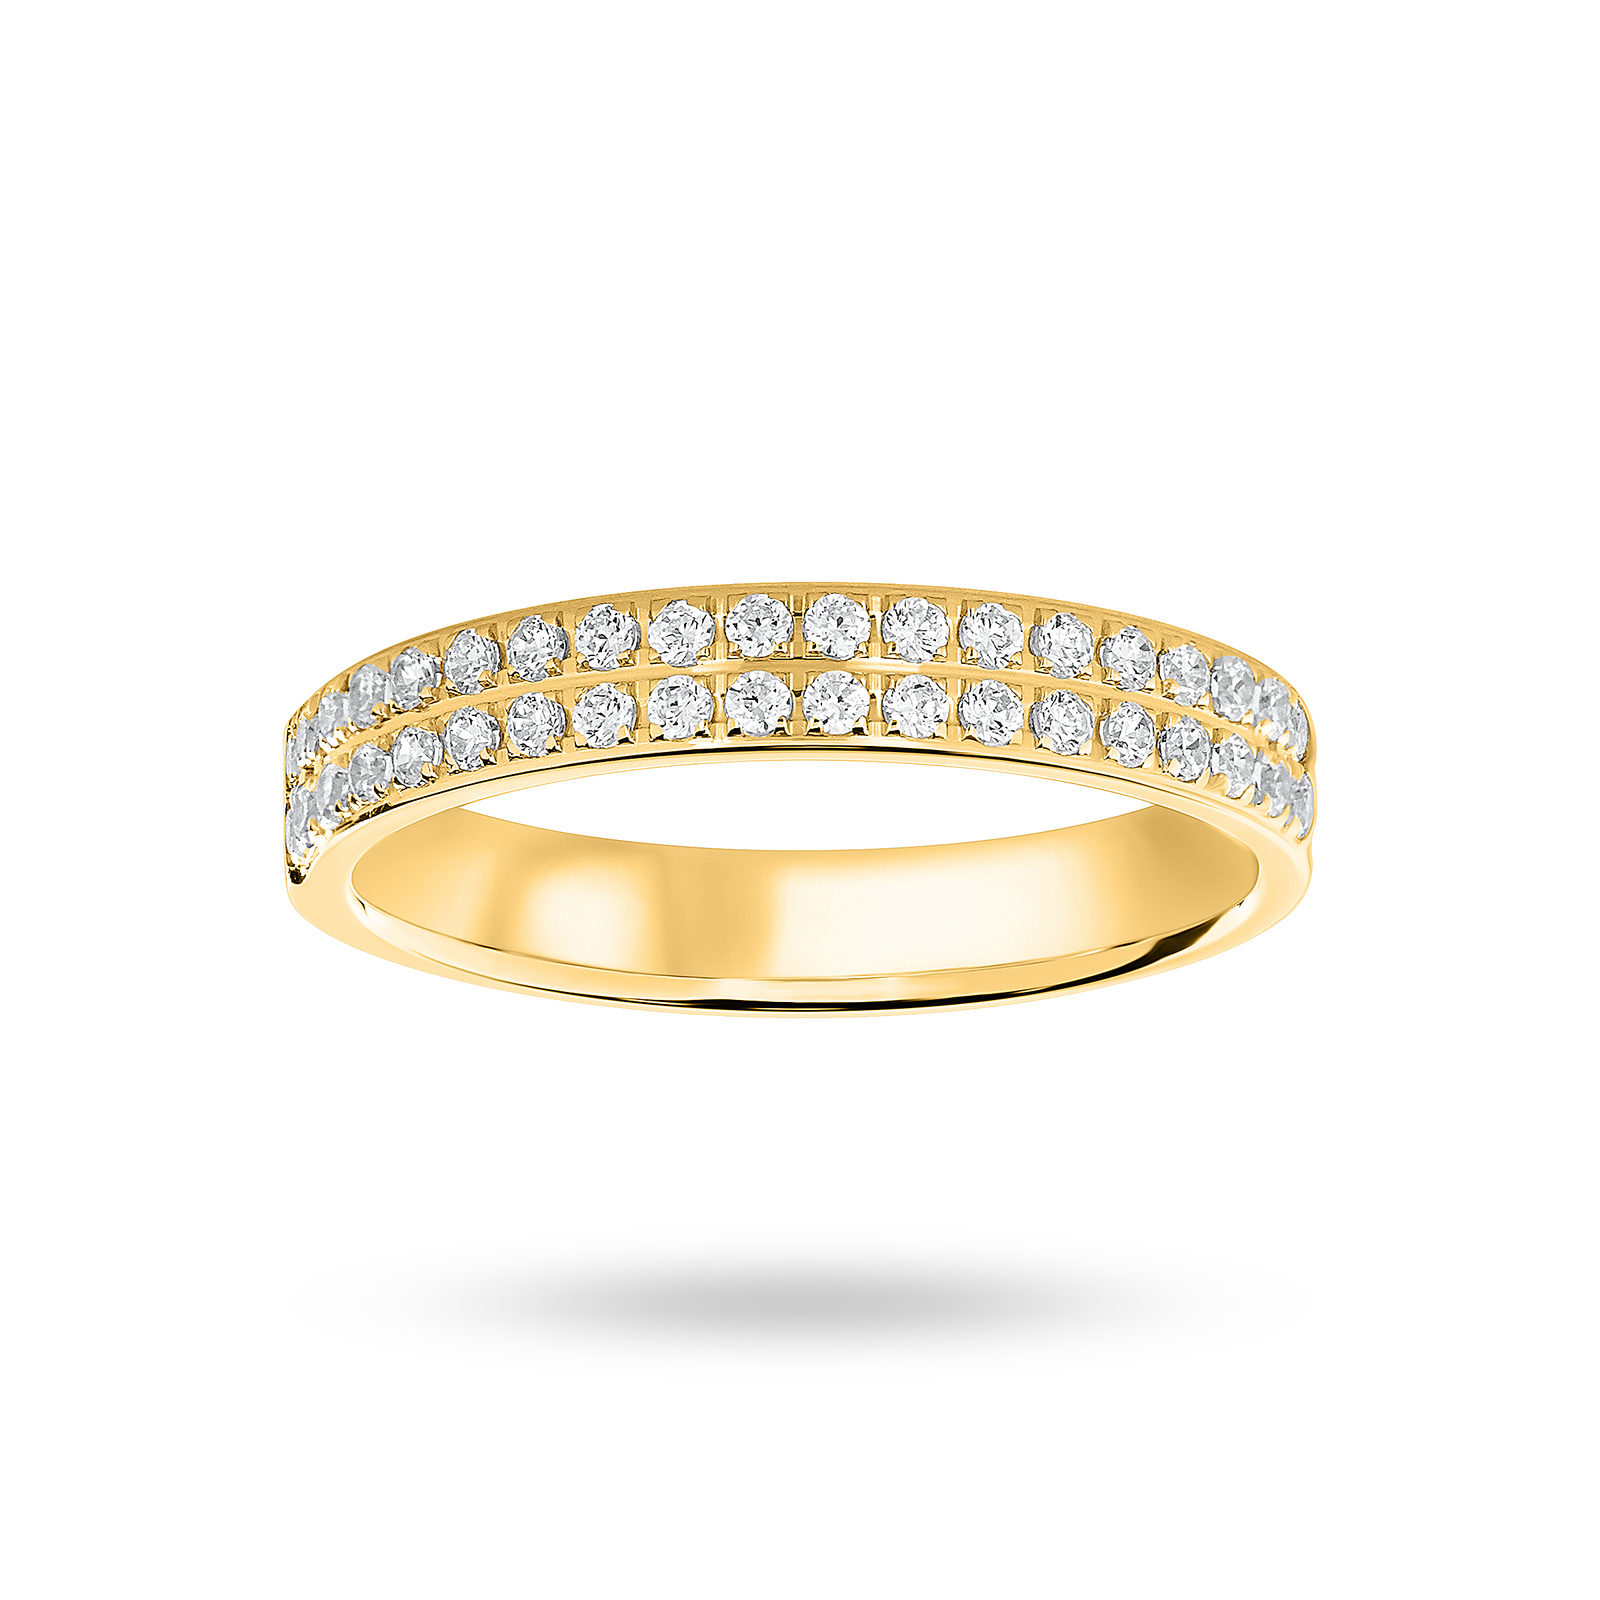 9 Ct Yellow Gold 0.25 Cttw Round Brilliant Cut 2 Row Claw Pave Half Eternity Ring